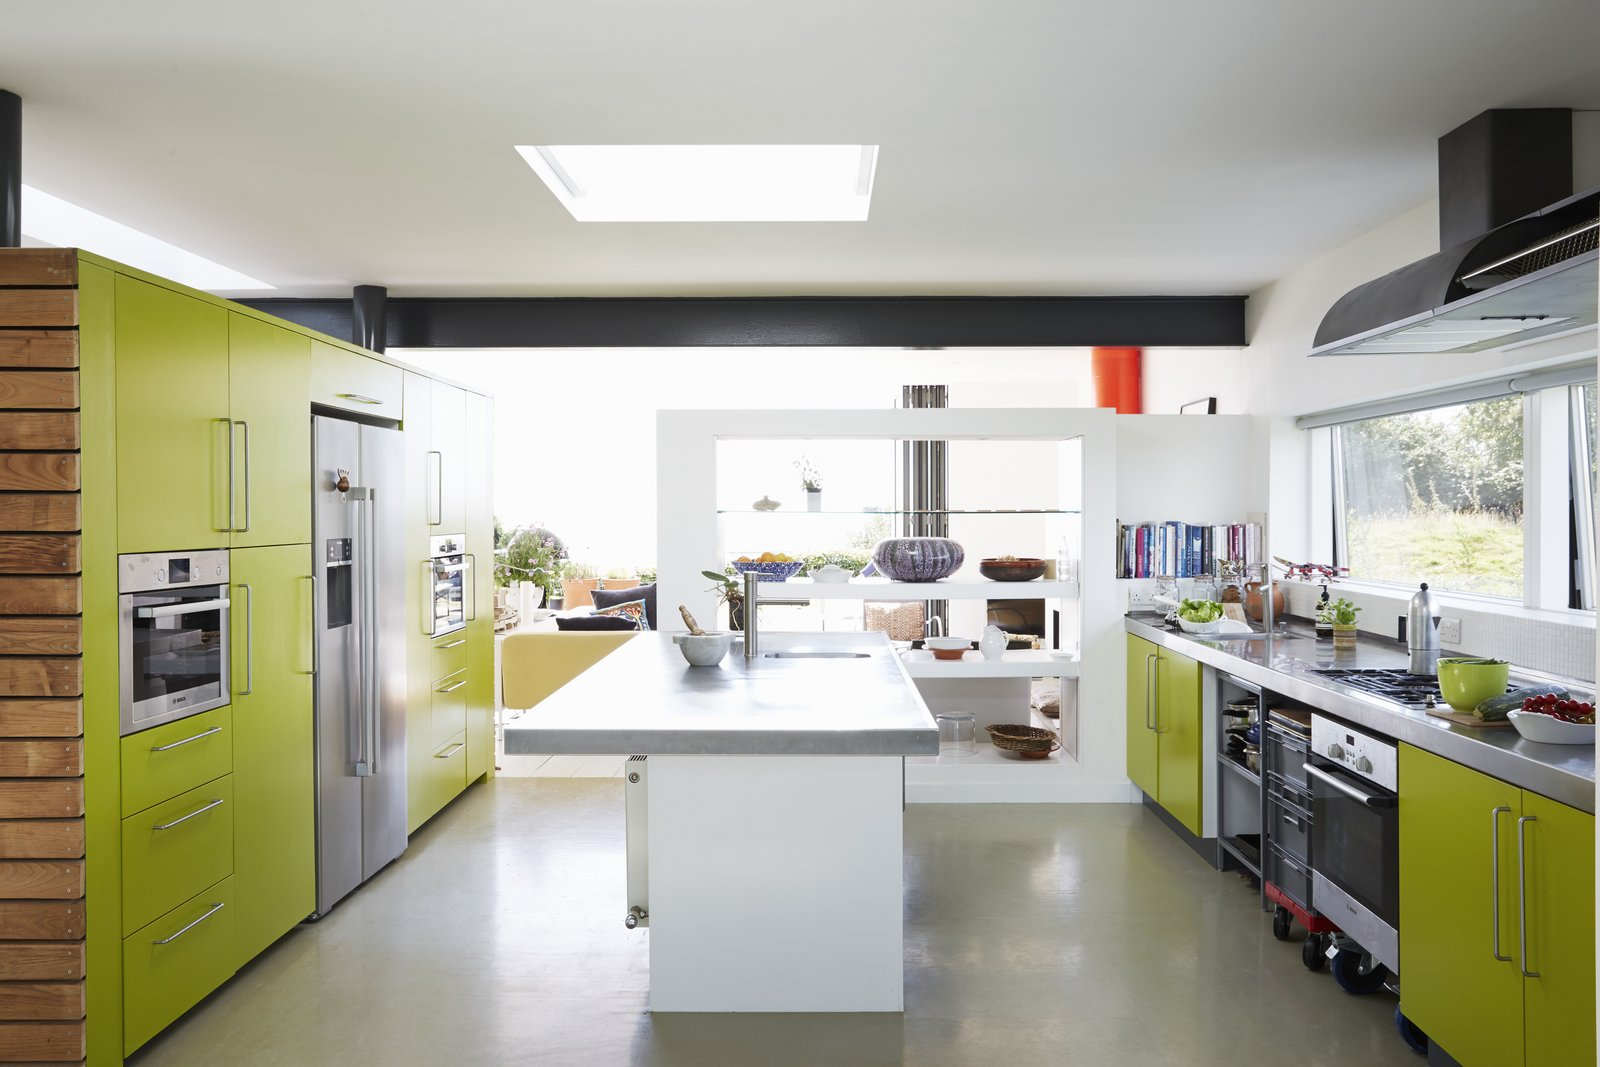 Equipped with Bosch appliances and a 16-foot steel countertop, the kitchen was tailor-made by architect and resident Nick Evans for his wife, Celia Sellschop, a chef.  Pett Level, England Dwell Magazine : November / December 2017 Tagged: Kitchen, Refrigerator, Wall Oven, Range, Microwave, Drop In, Metal, and Colorful.  Best Kitchen Refrigerator Wall Oven Microwave Photos from Fall in Love With This British Architect's Colorful Weekend Retreat